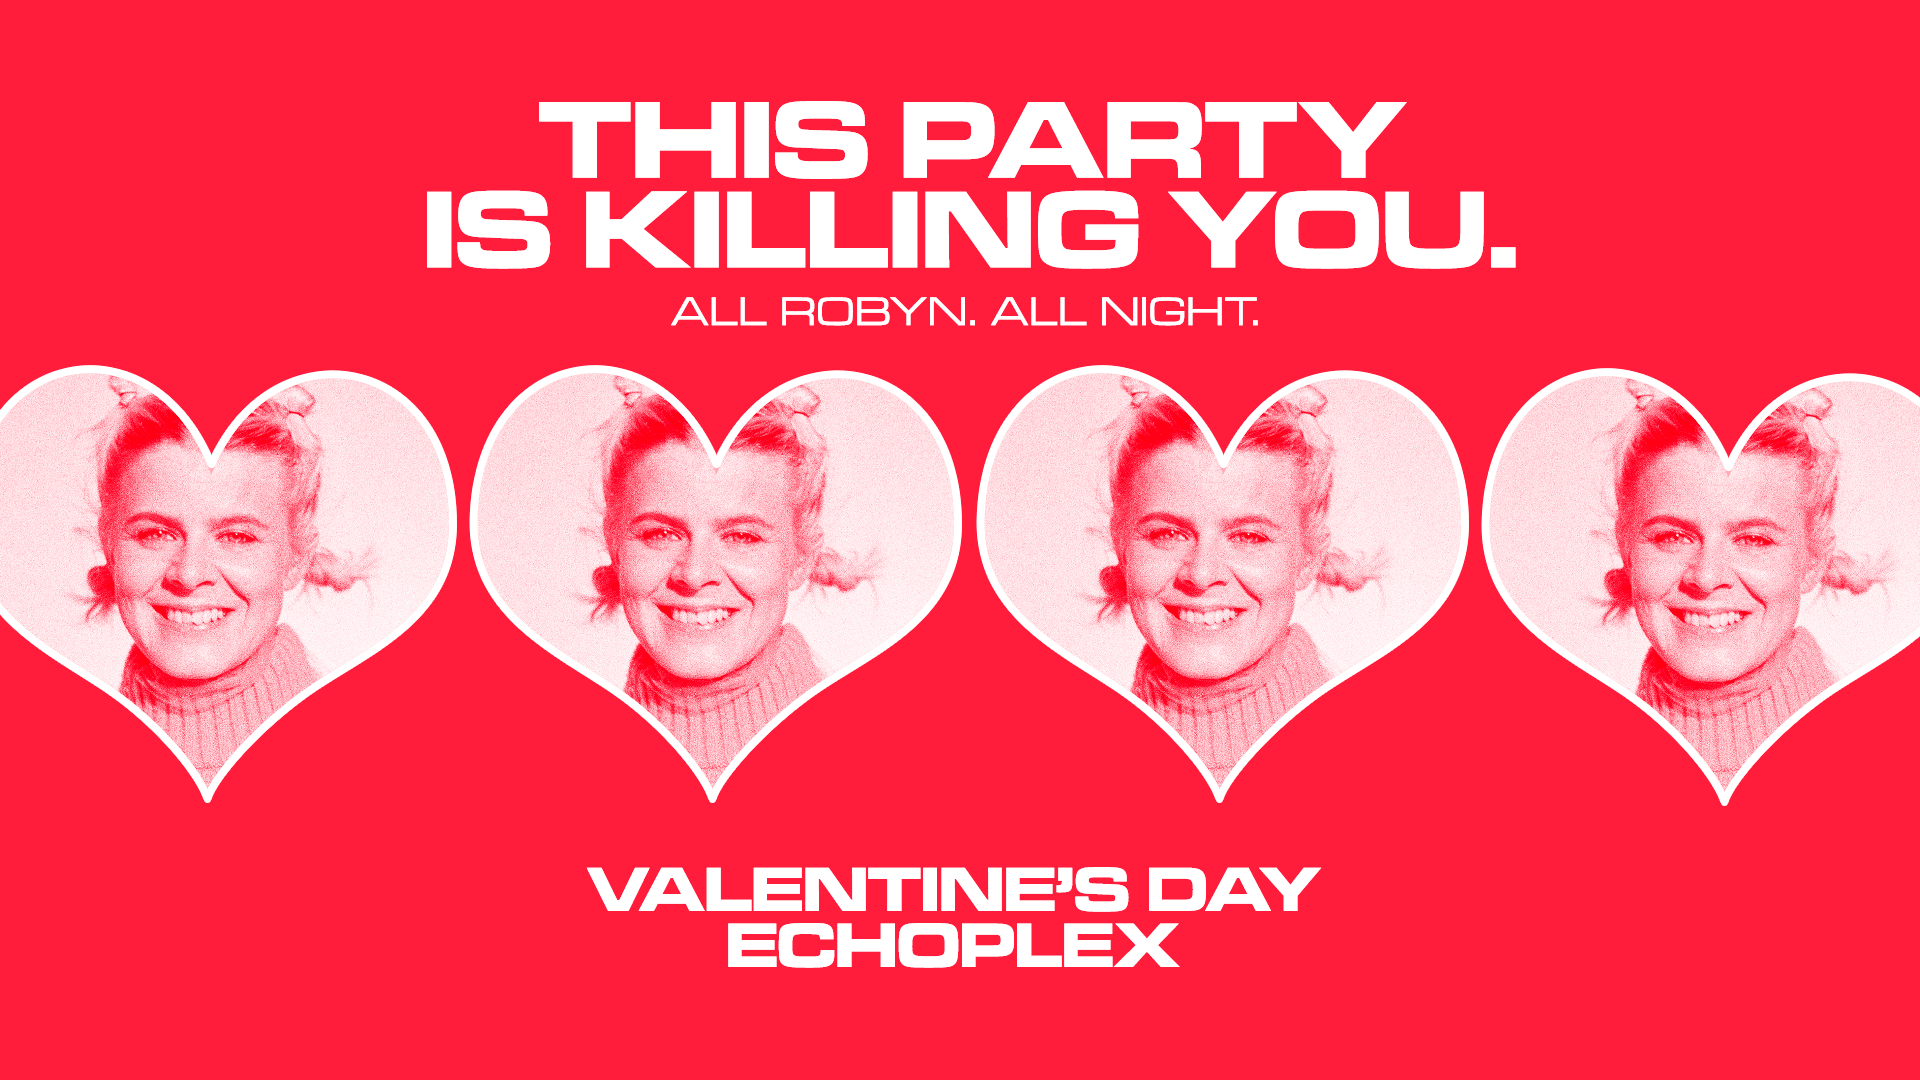 This Party Is Killing You: A Valentine's Night of All Robyn! Feb 14th in LA